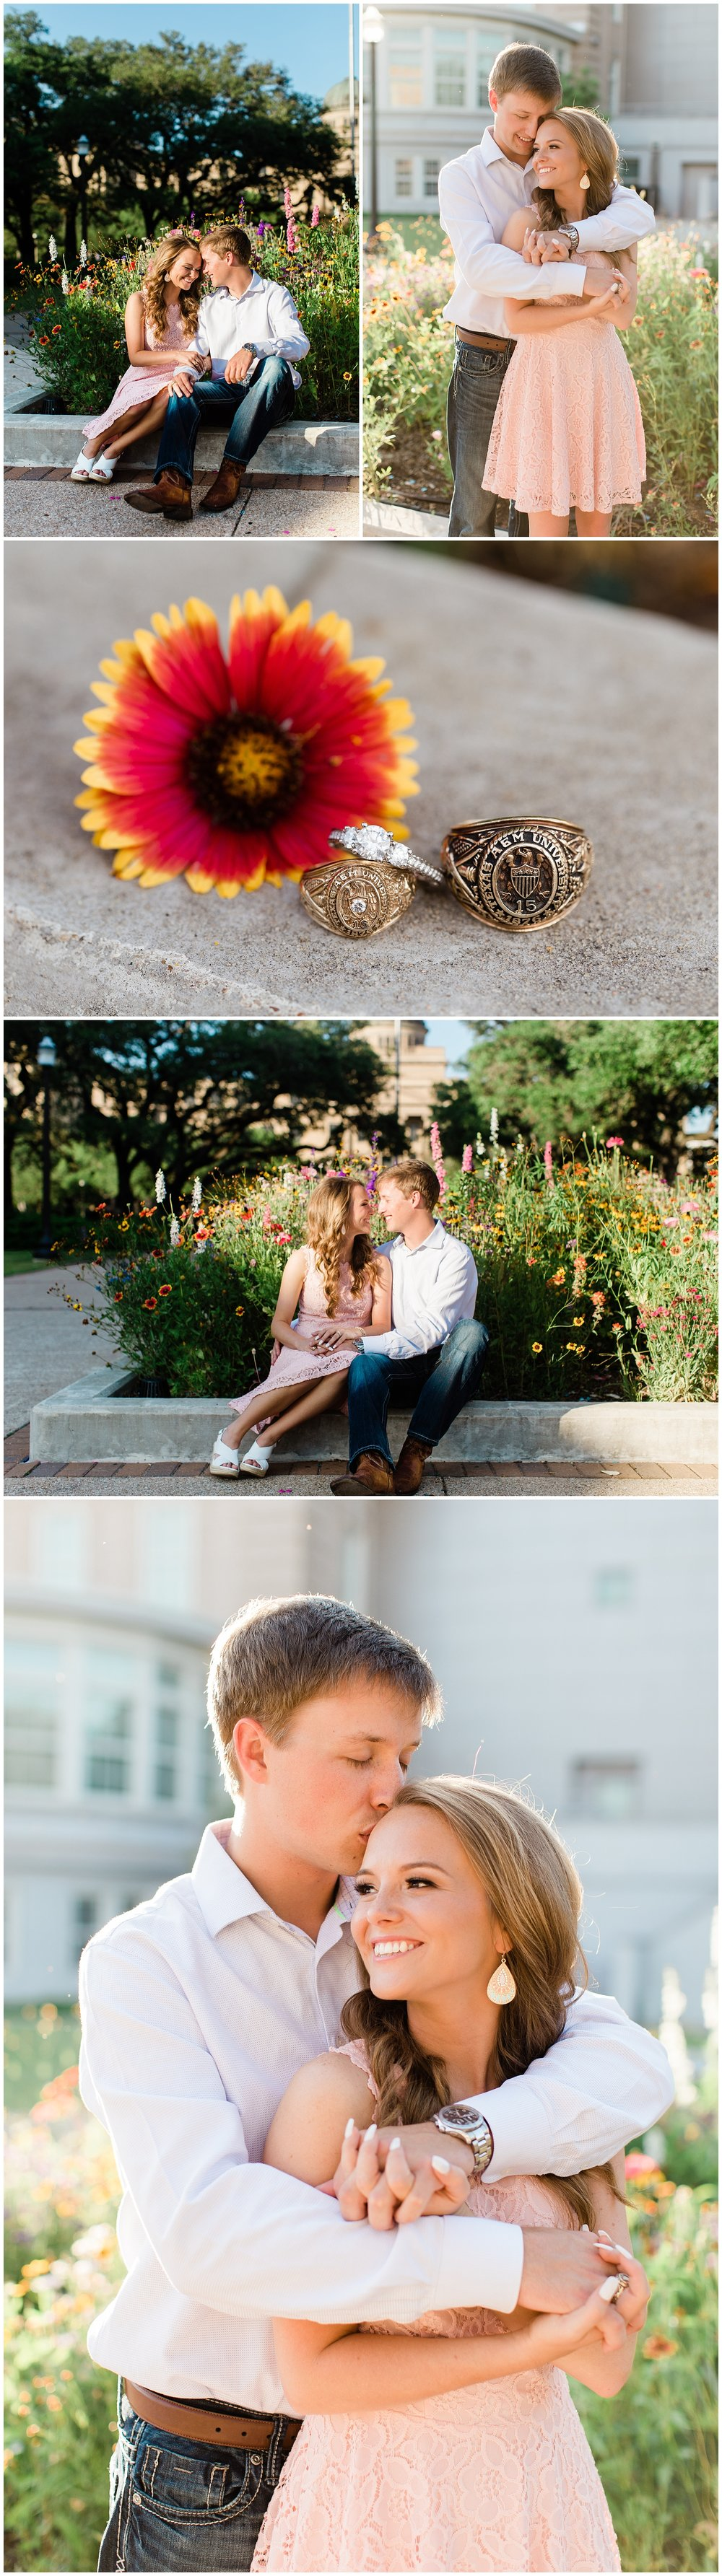 Texas_A&M_Engagement_Session_Kristina_Ross_Photography_0007.jpg